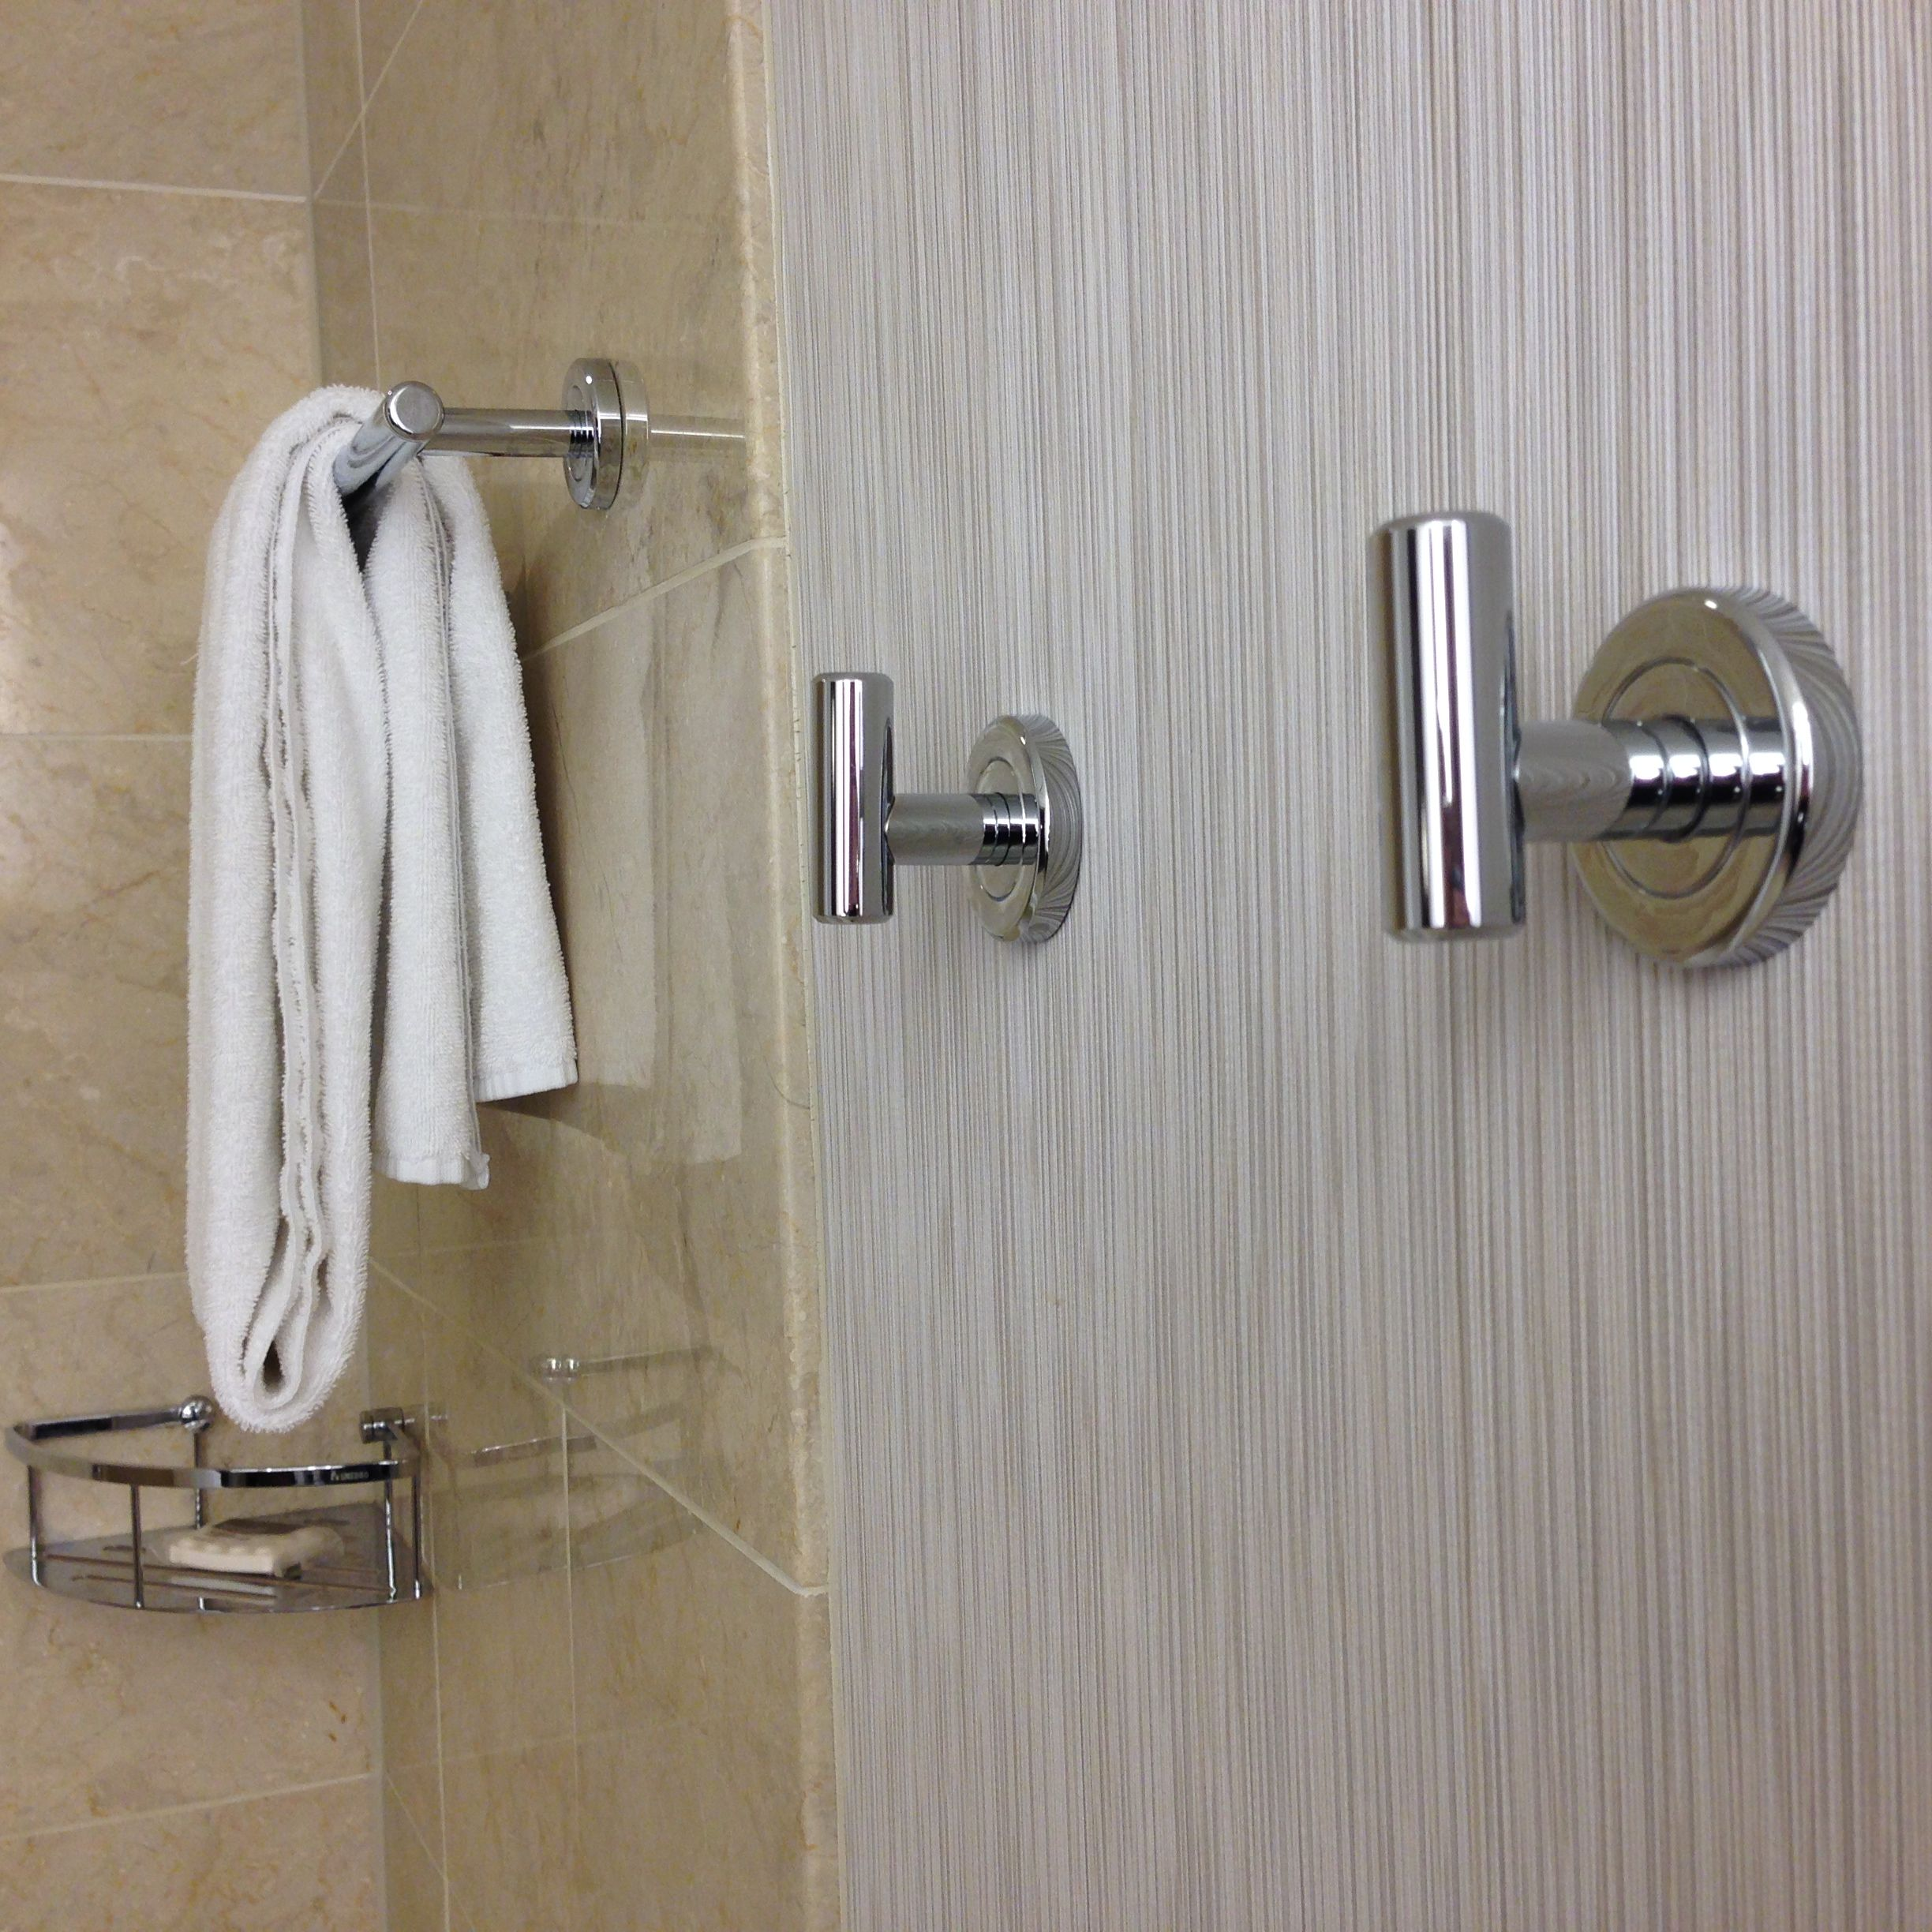 this hotel bathroom feature has me 'hooked' - travelupdate